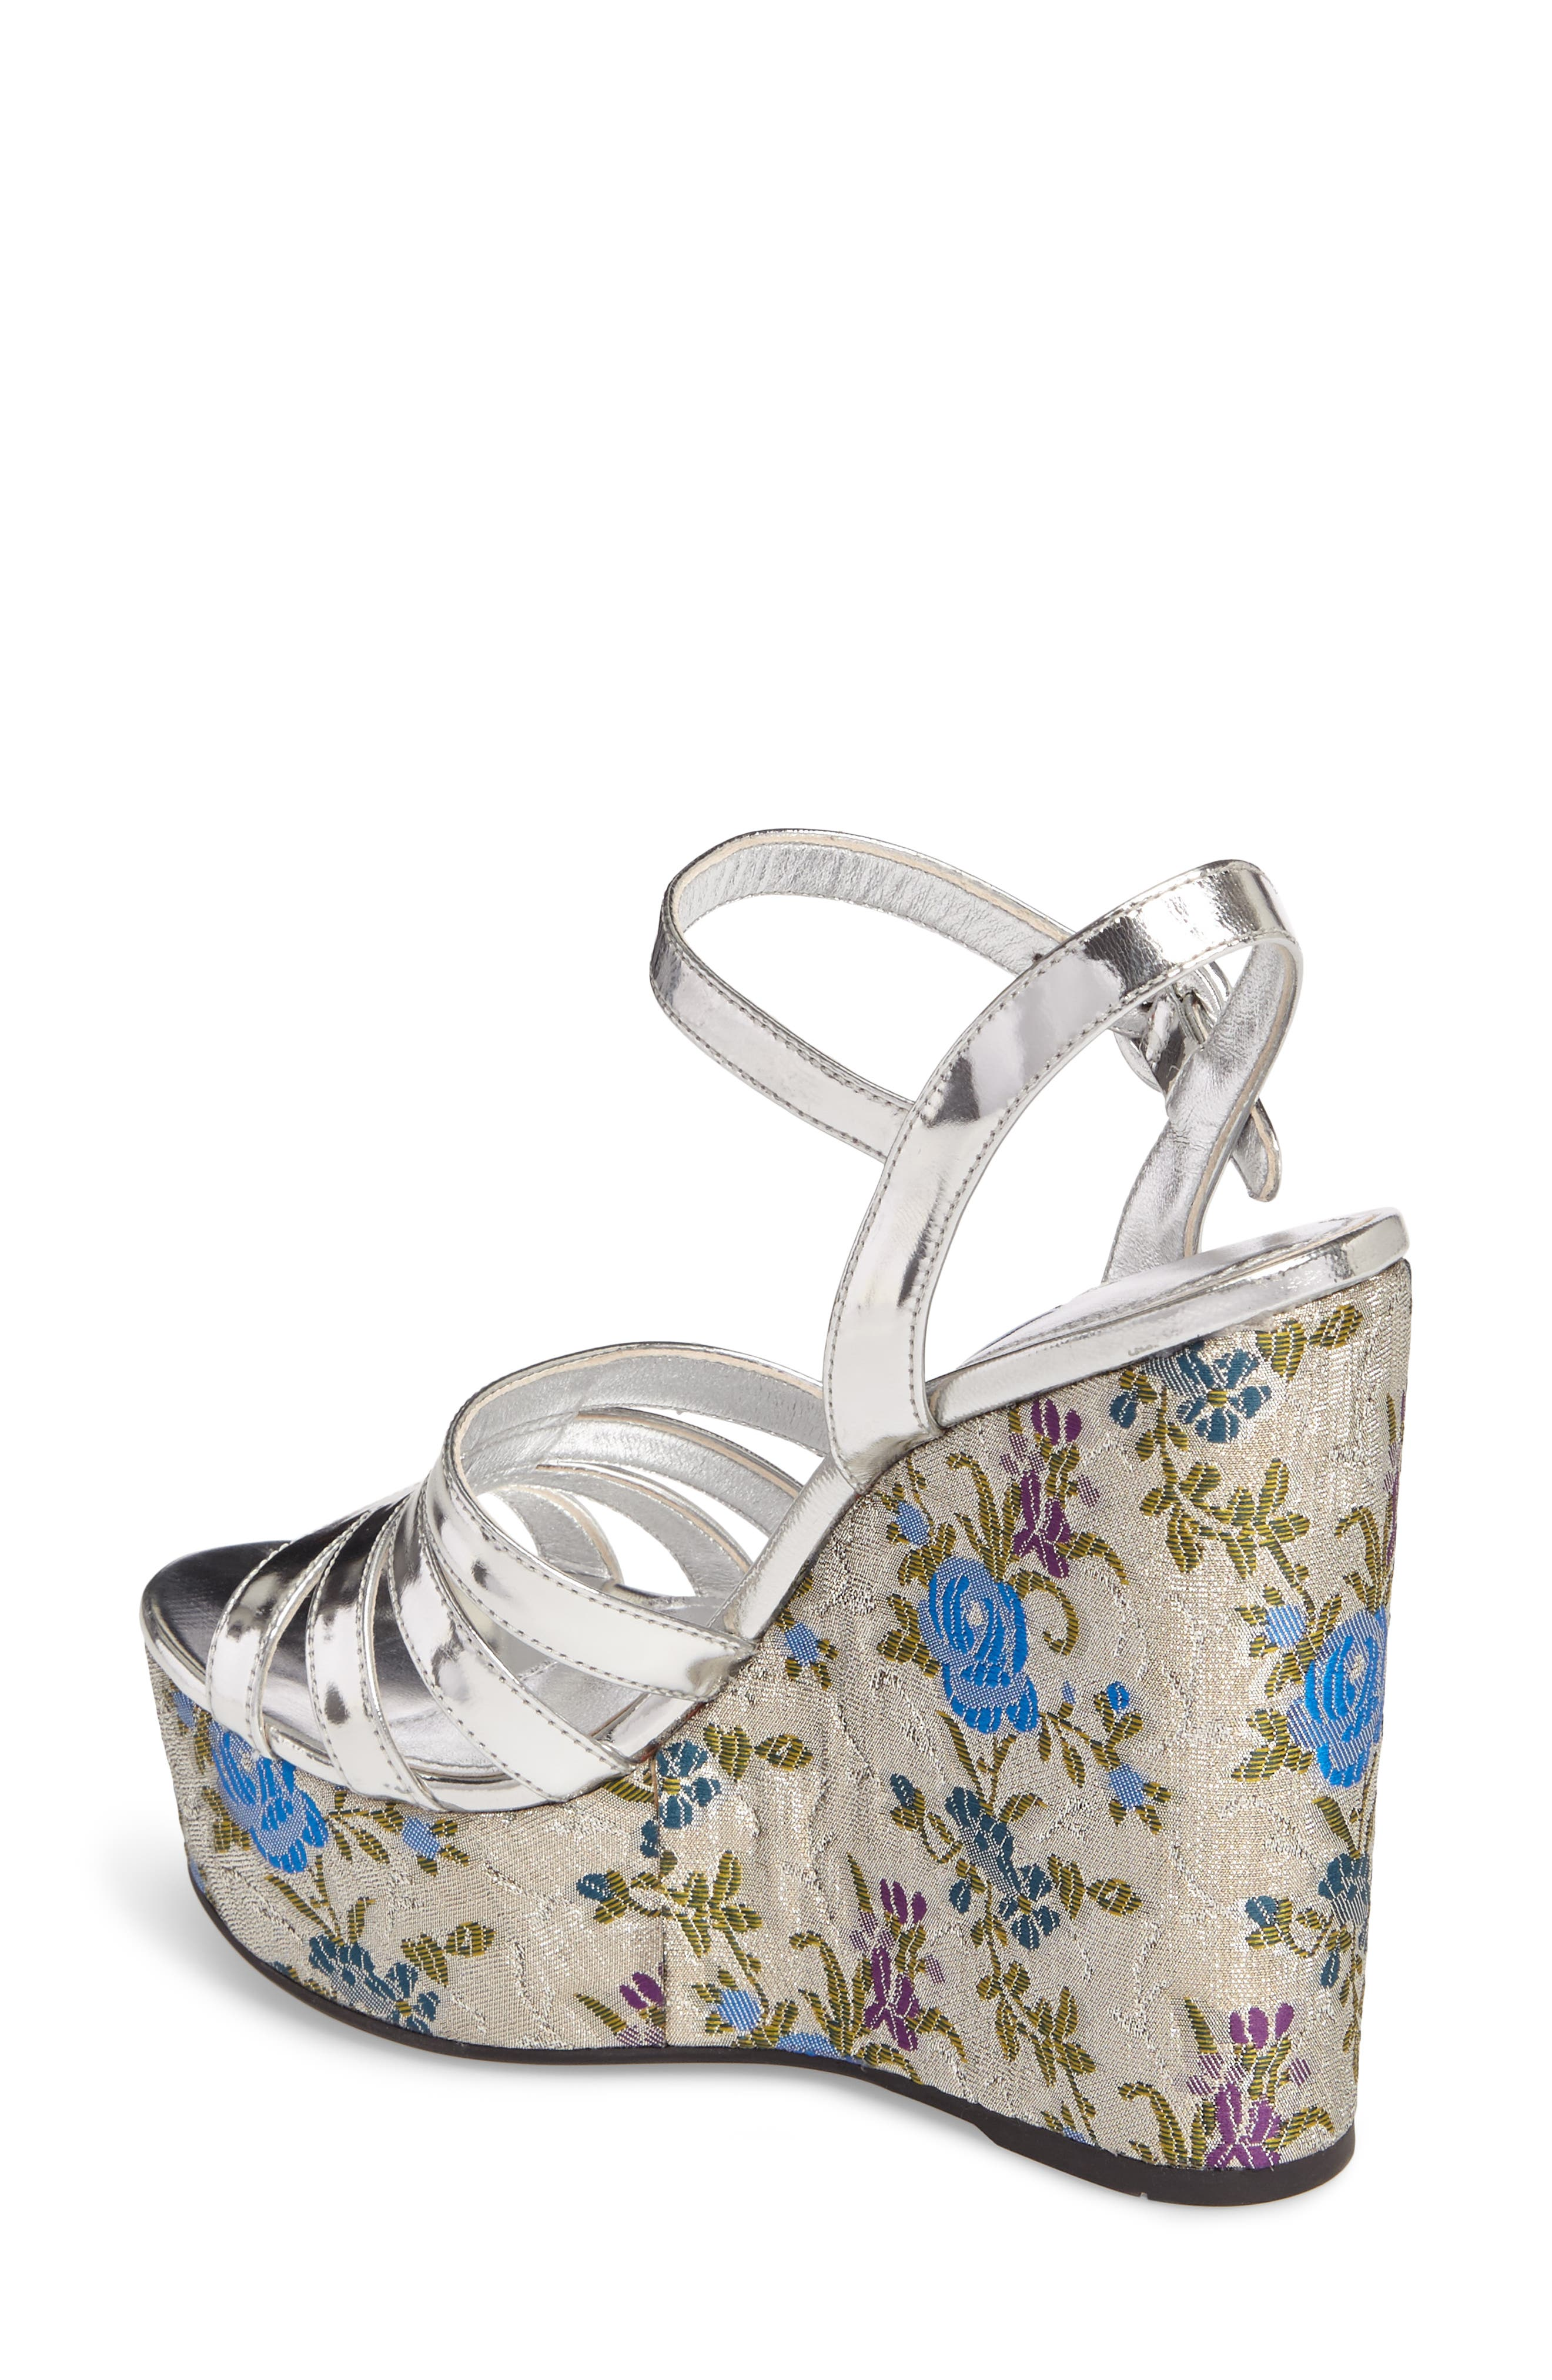 Floral Wedge Platform Sandals,                             Alternate thumbnail 2, color,                             Silver/ Blue